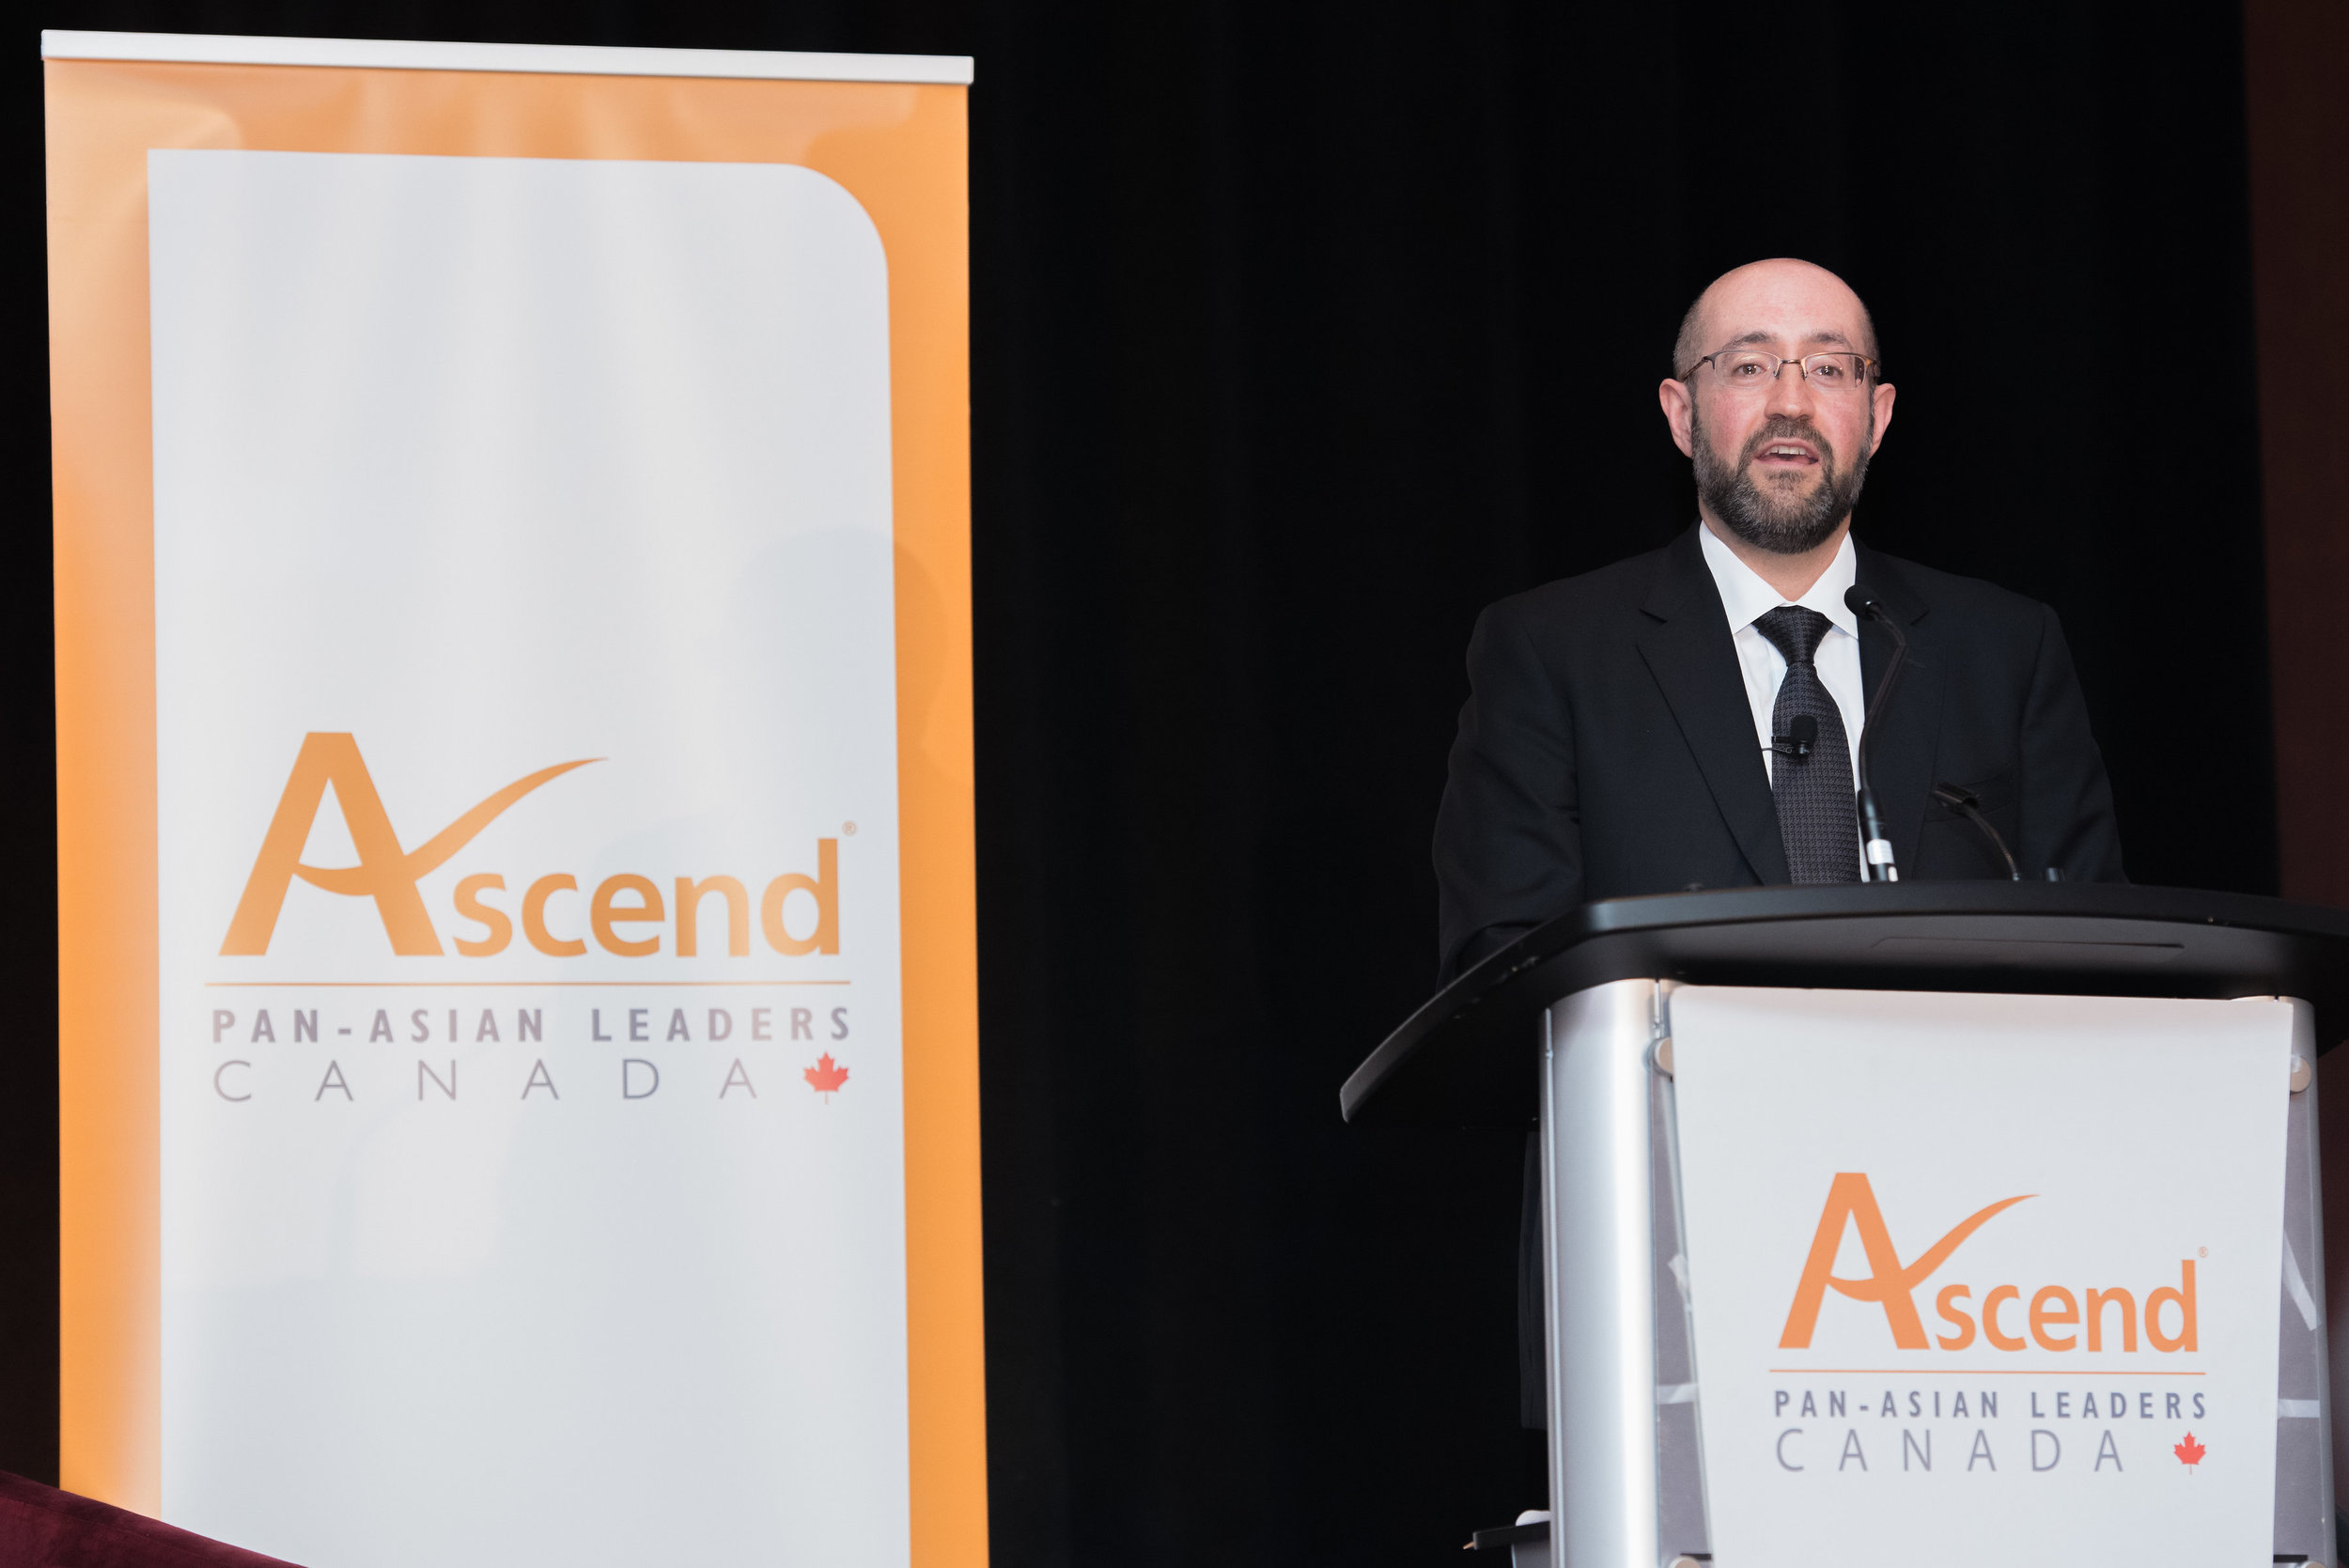 Jay Rosenzweig Speaking On Leadership & Diversity At Ascend Pan Asian Gala Dinner - close up.jpg